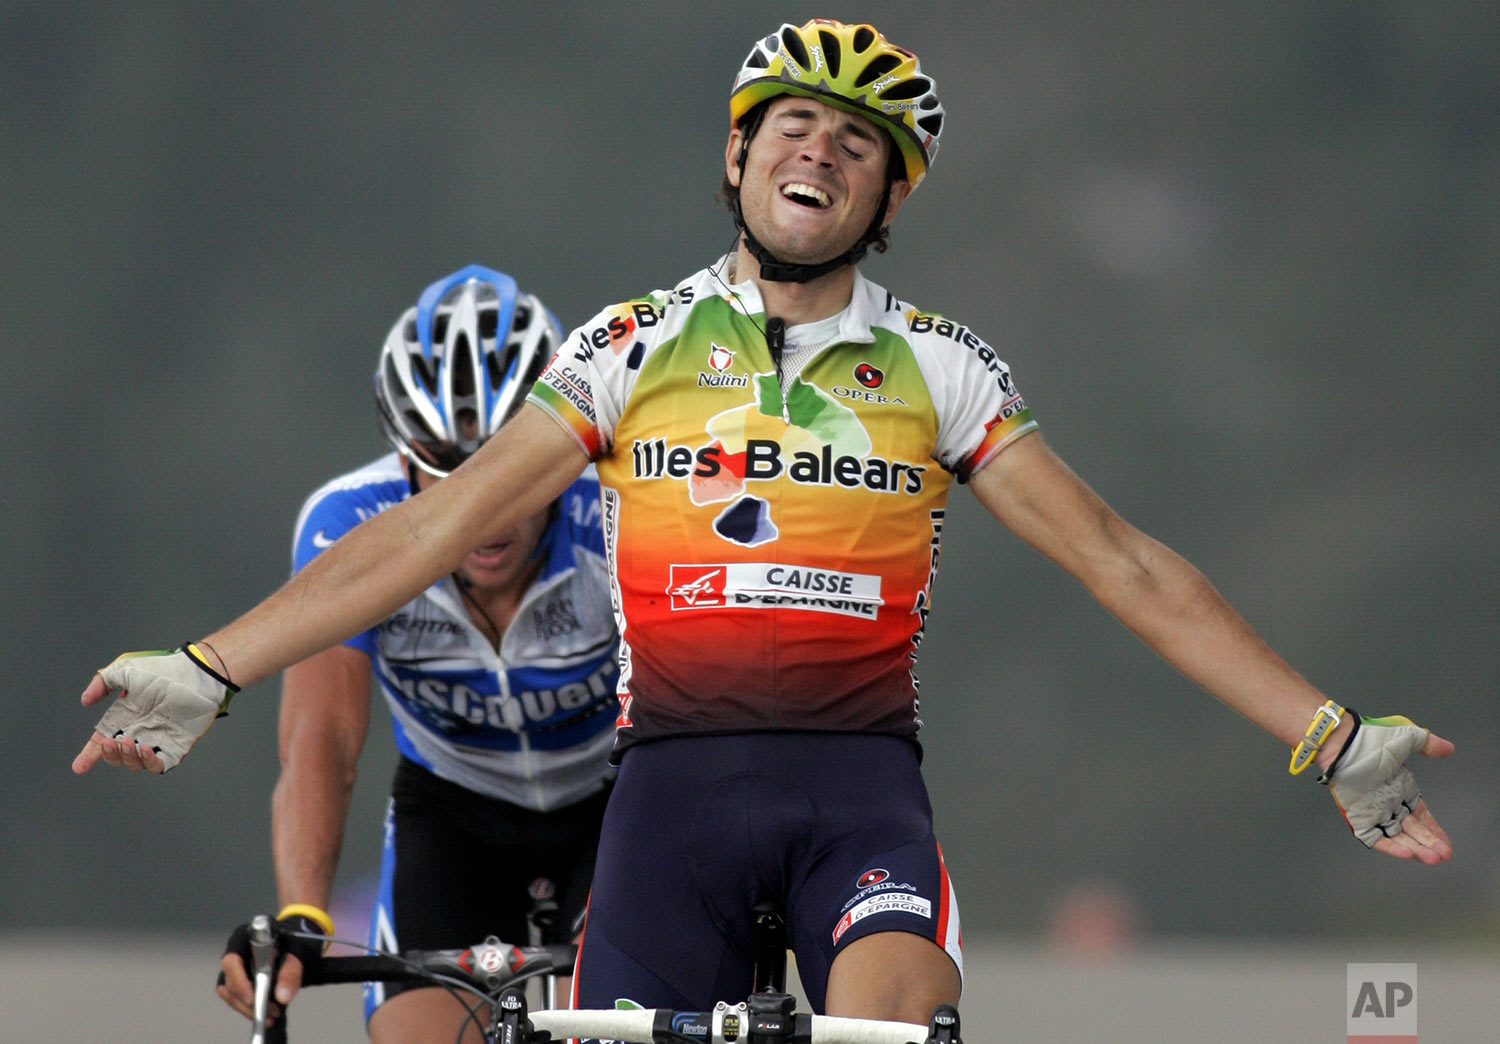 Alejandro Valverde of Spain, foreground, reacts as he crosses the finish line to win the 10th stage of the Tour de France cycling race, ahead of Lance Armstrong, of Austin, Texas, left, between Grenoble and Courchevel, French Alps, Tuesday, July 12, 2005. Armstrong took the overall lead again on Tuesday. (AP Photo/Peter Dejong)